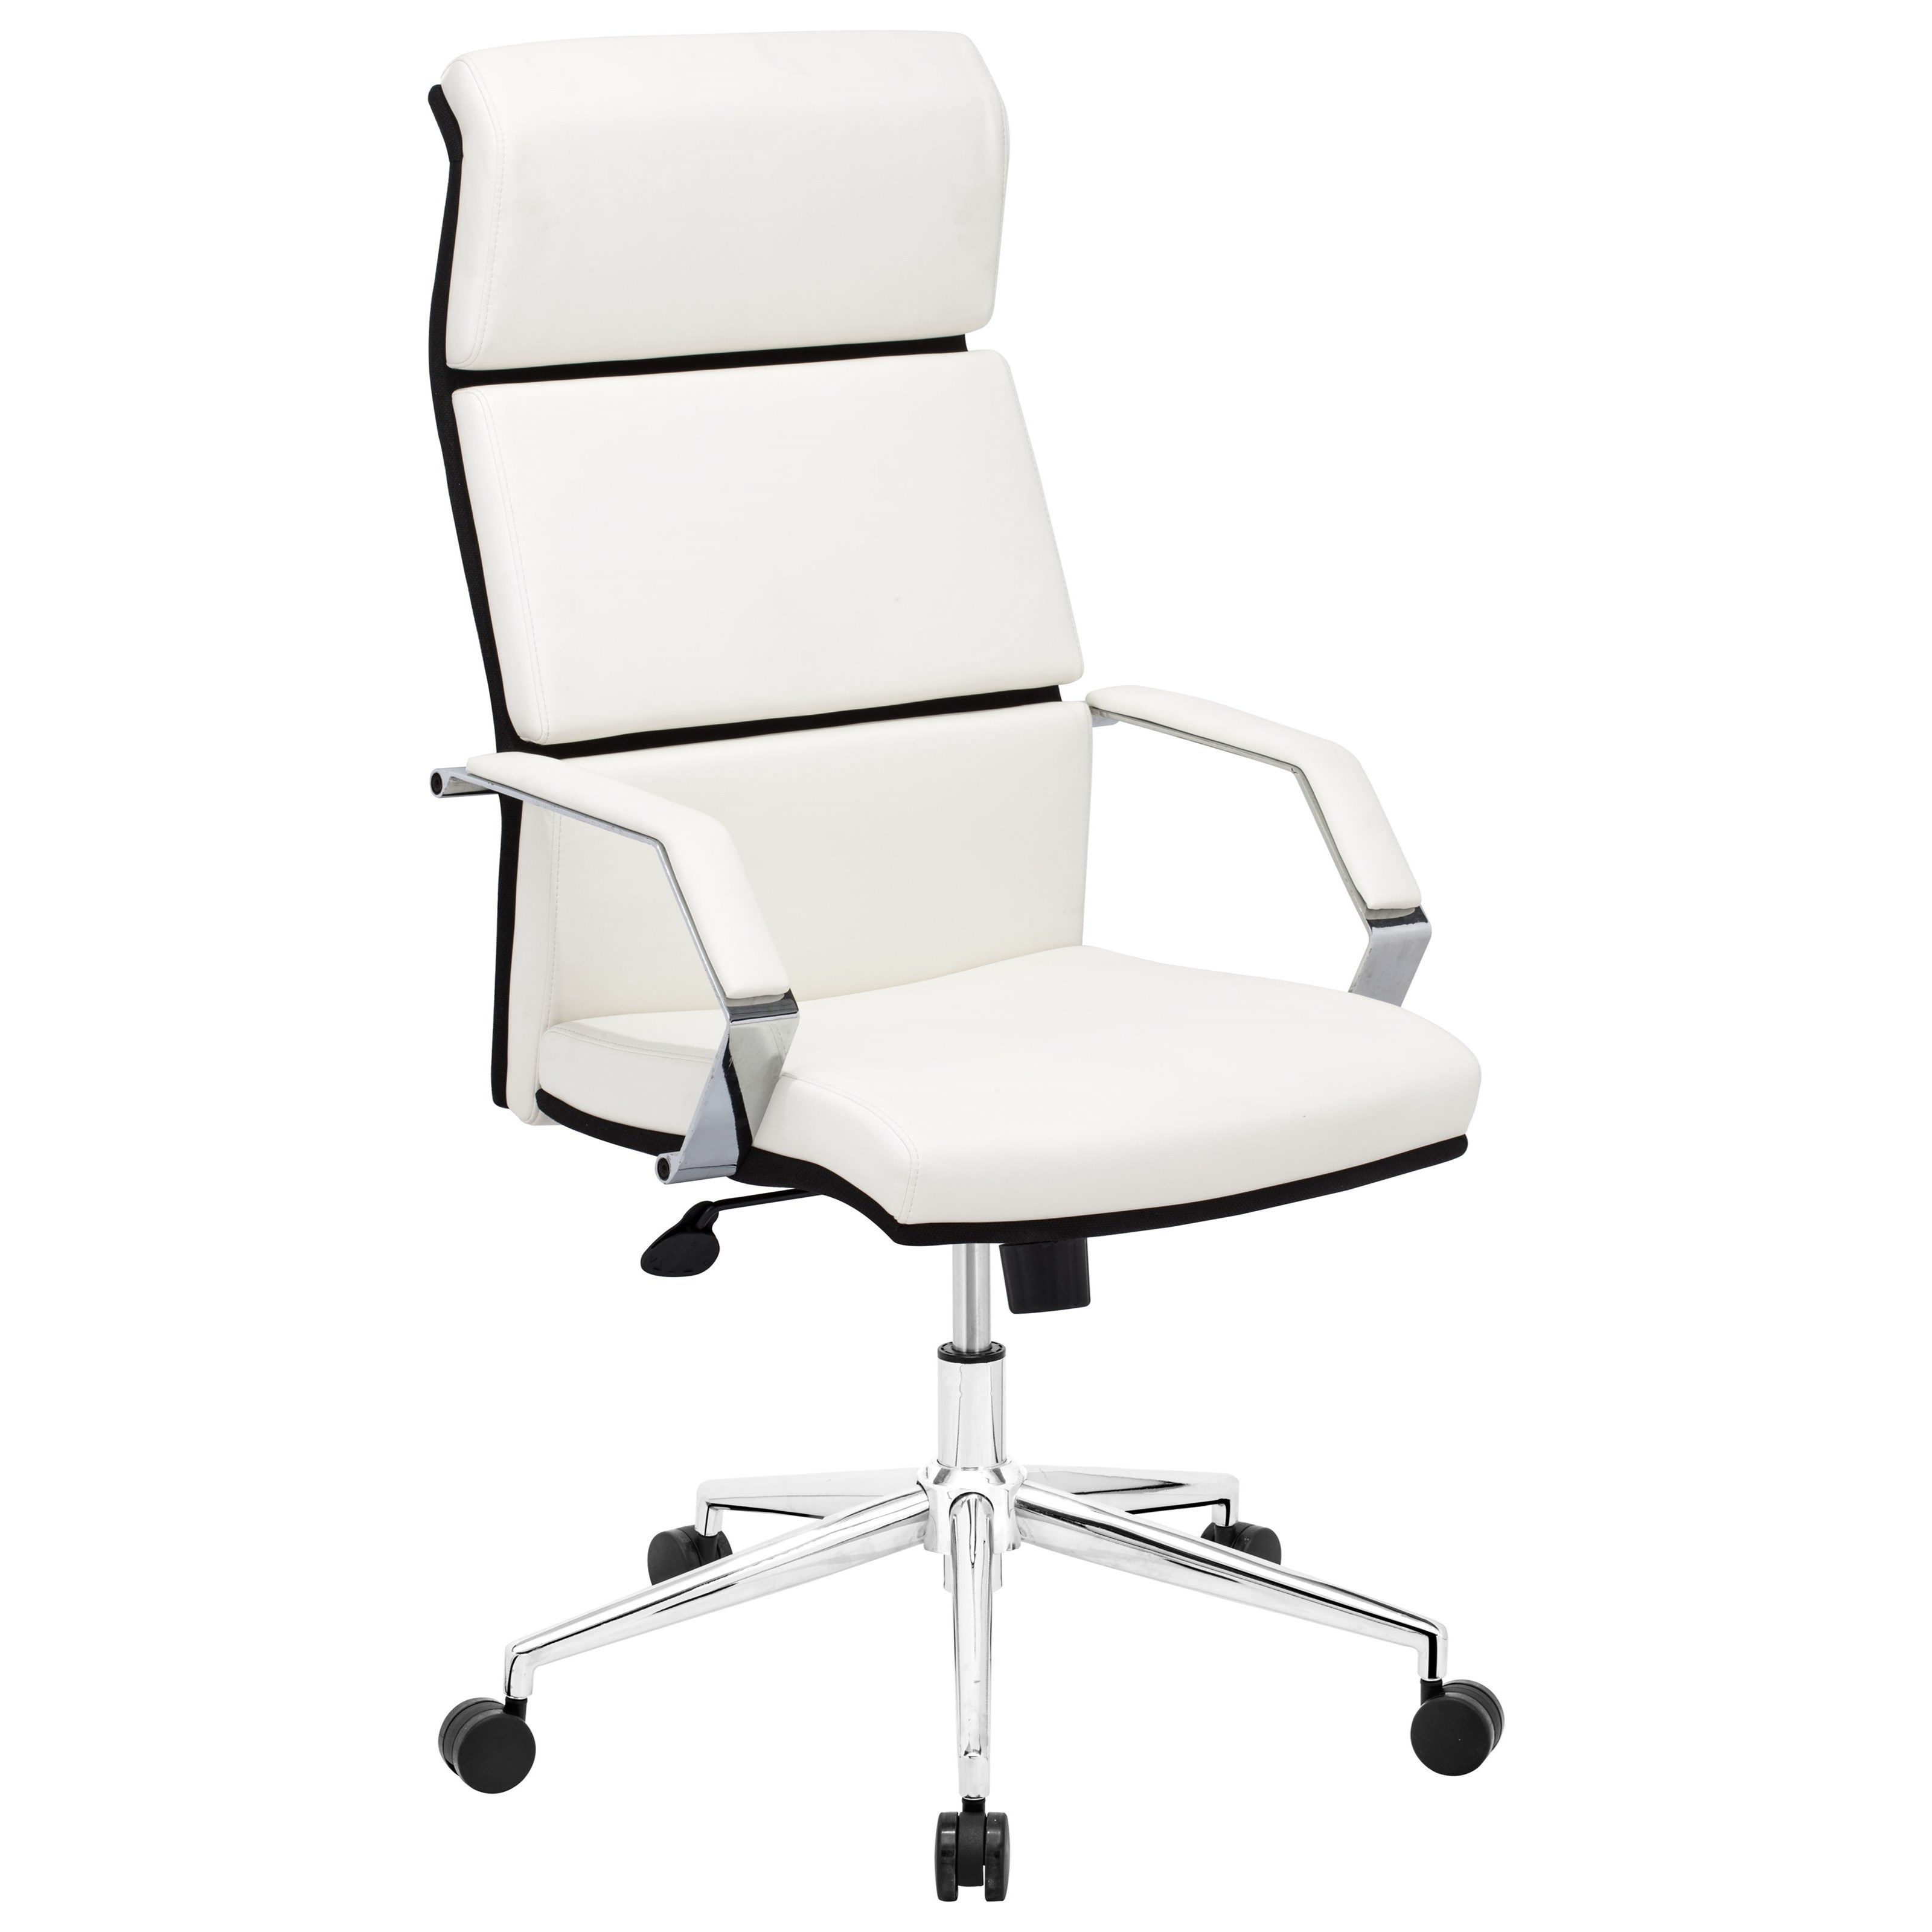 Zuo Lider Pro Office Chair Item Number 205311